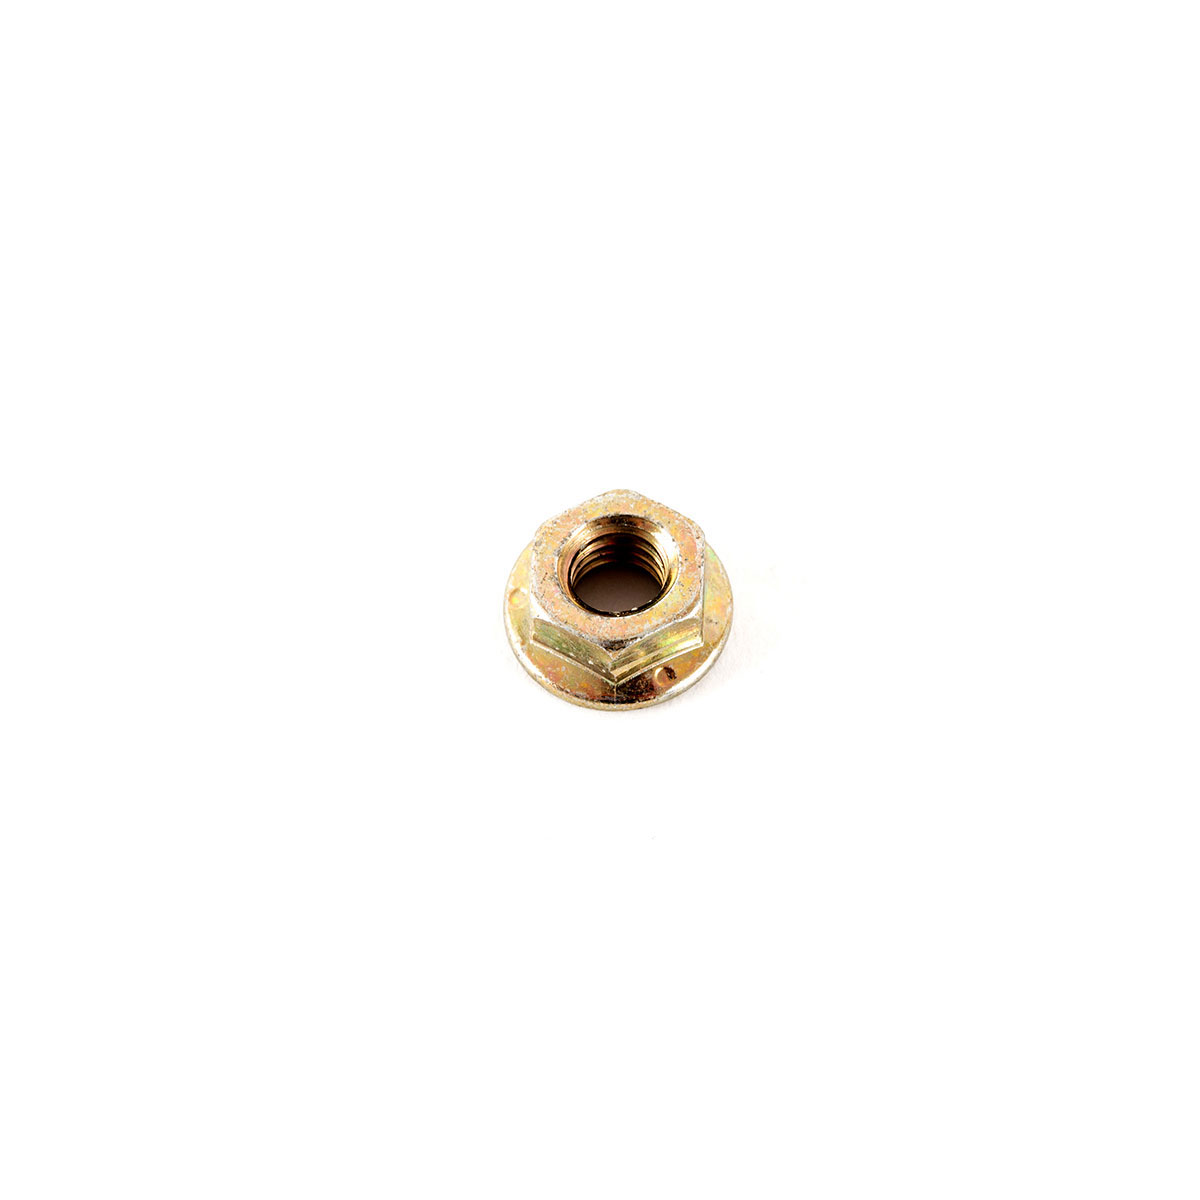 hex flange lock nut 712-3004a